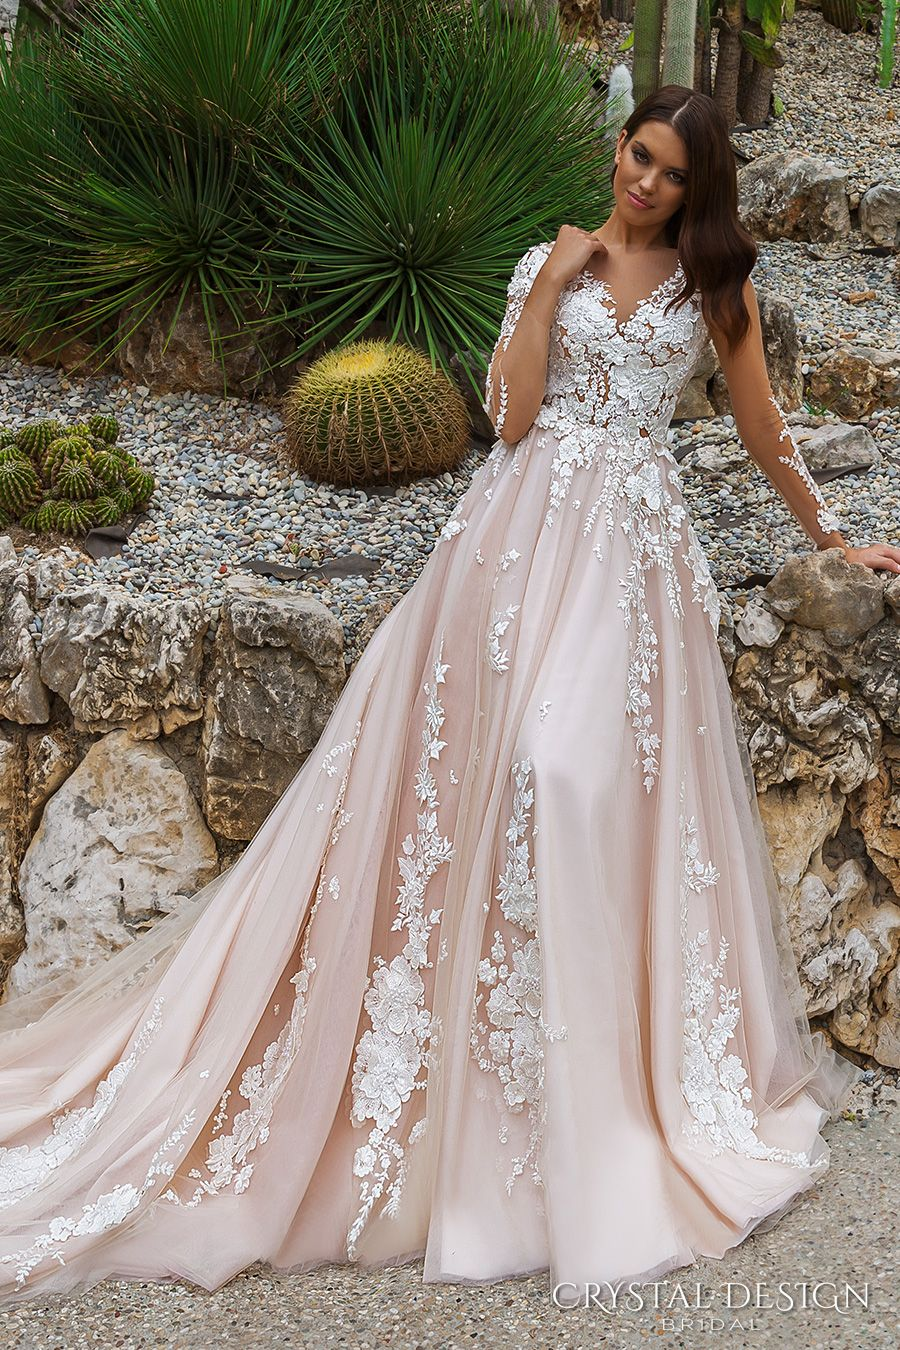 Crystal Design 2017 Wedding Dresses Haute Couture Bridal Collection